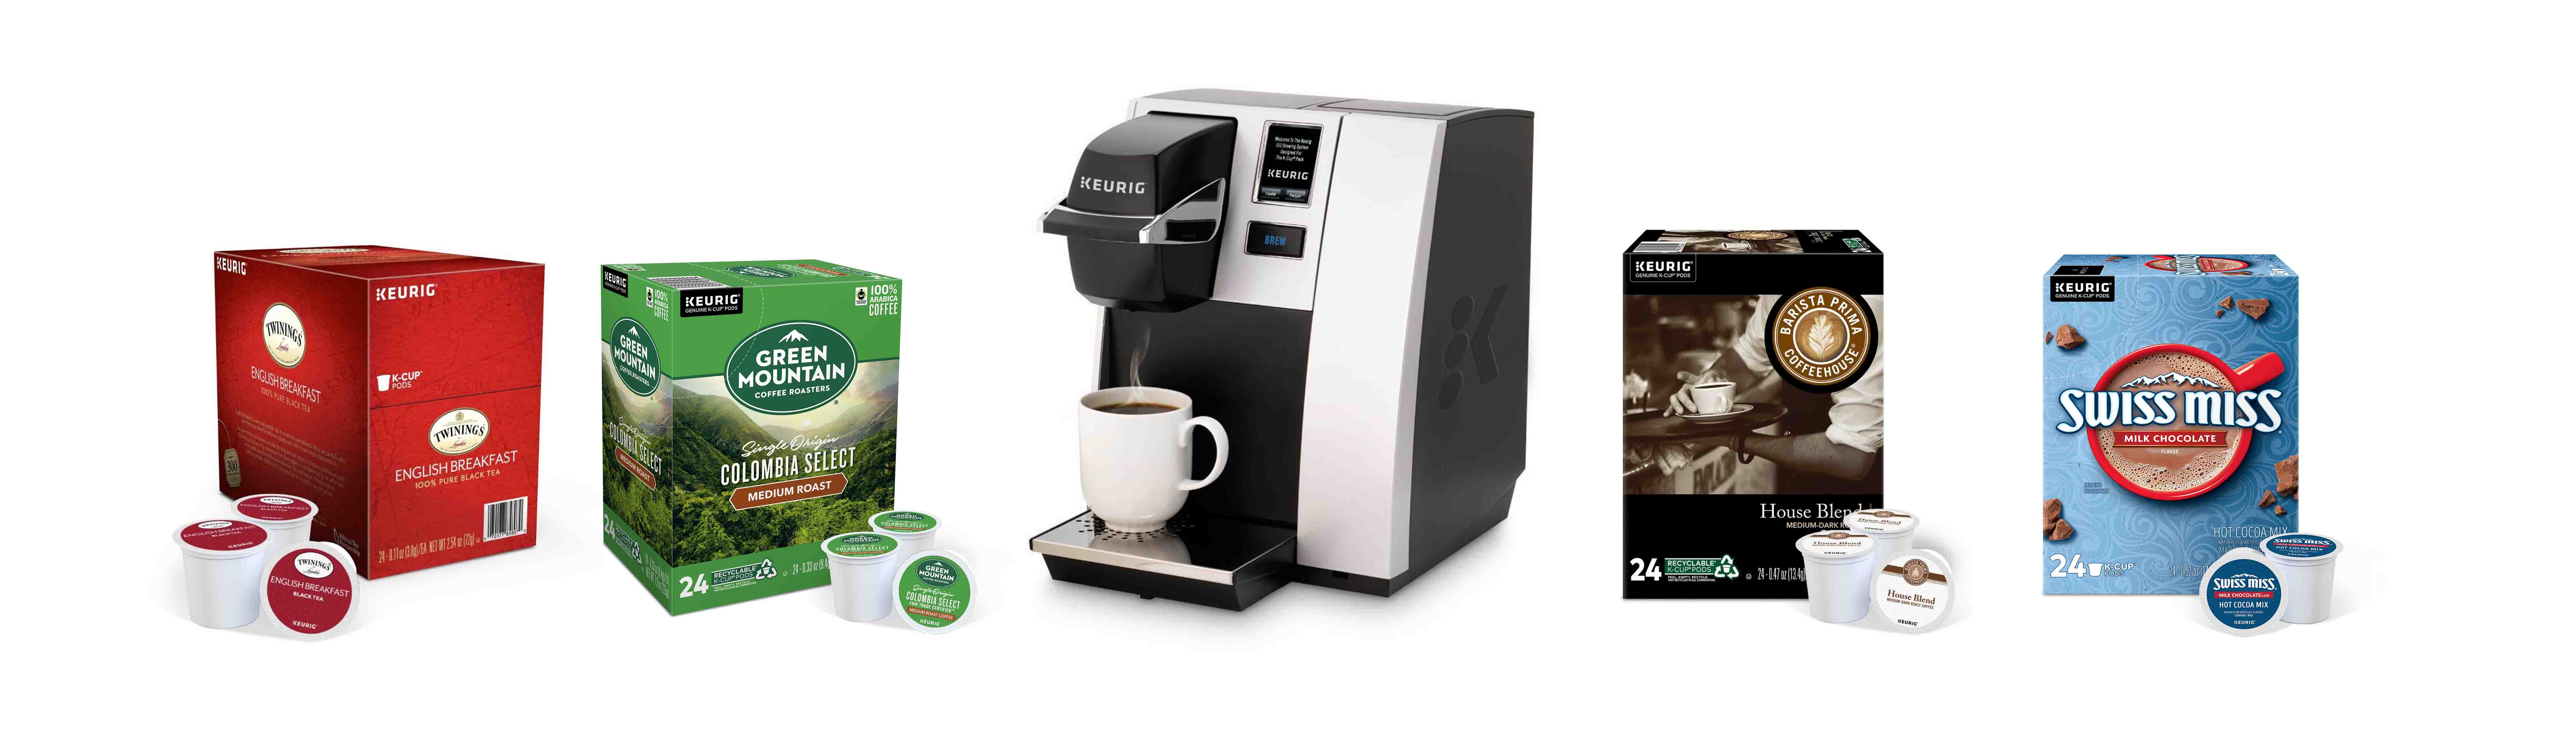 Keurig coffee pods and machines